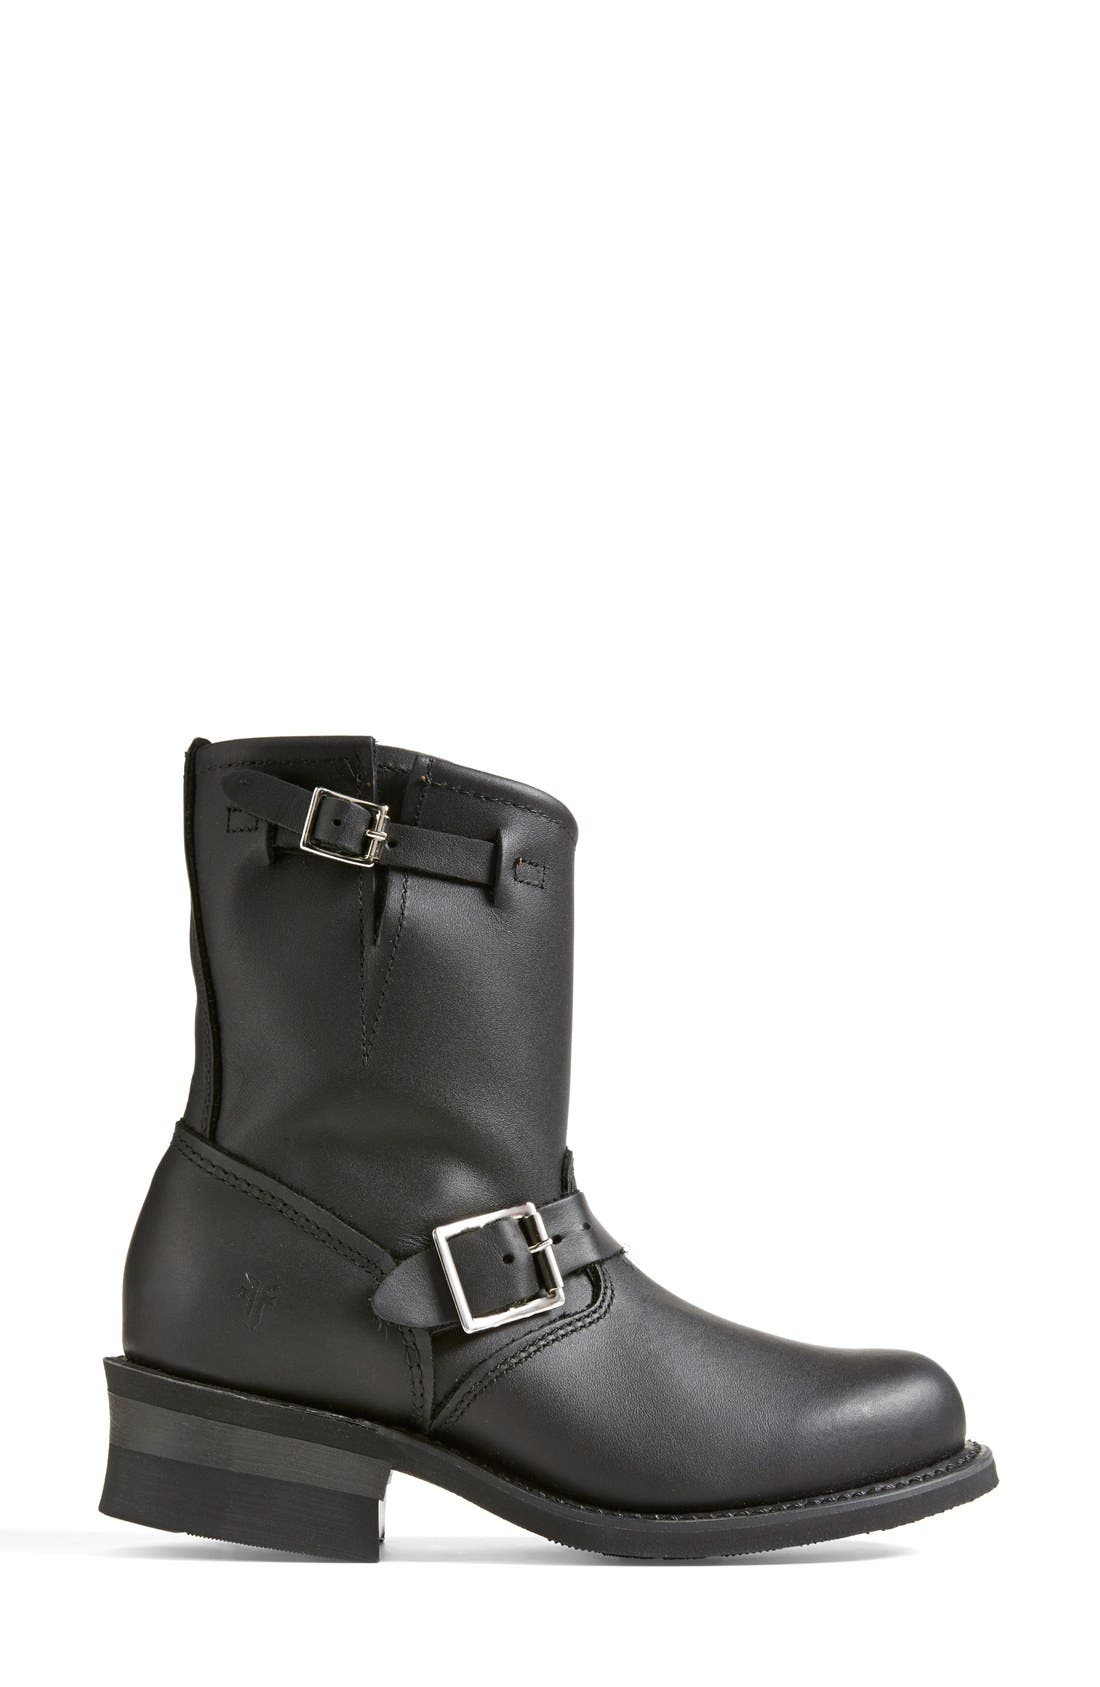 'Engineer 8R' Leather Boot,                             Alternate thumbnail 5, color,                             BLACK